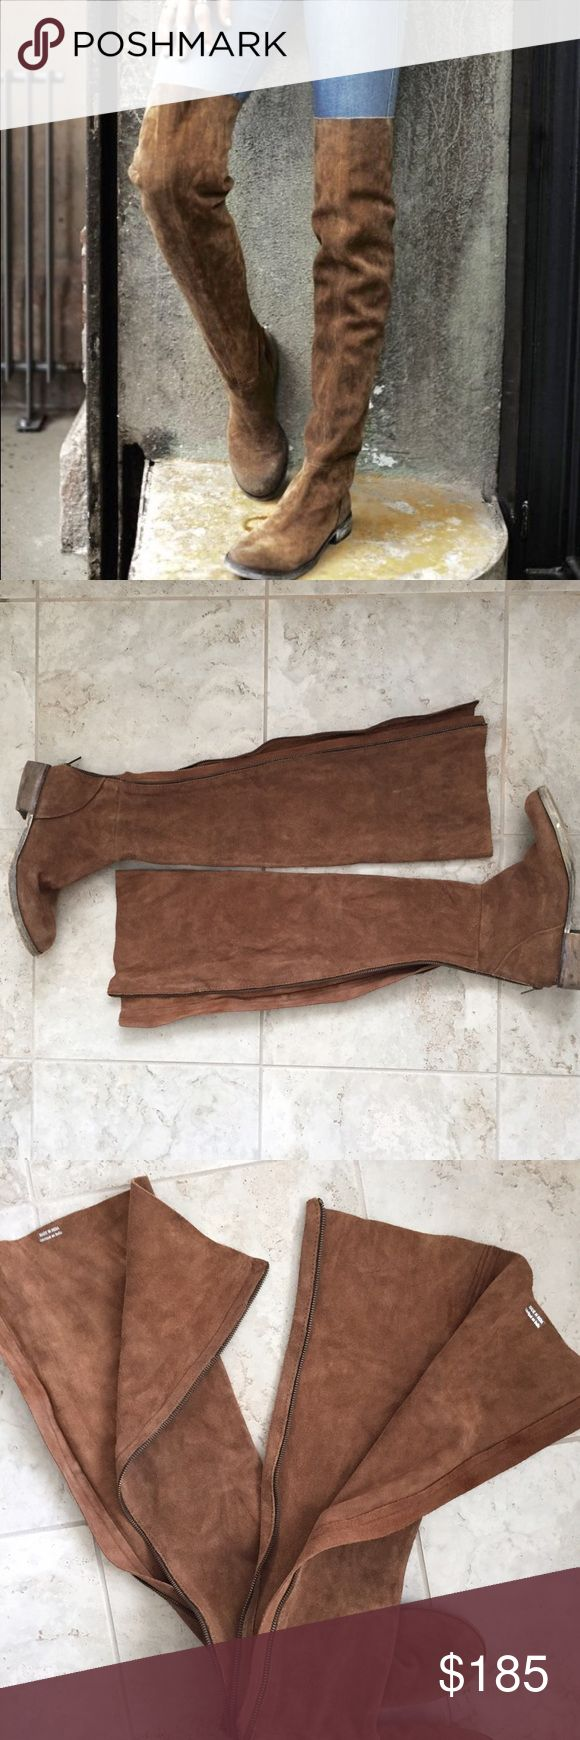 Free People Over the knee boot Full zip back, softest suede. They run on the small side. They are a size 39, equivalent to an 8. Great condition worn only a handful of times. Free People Shoes Over the Knee Boots